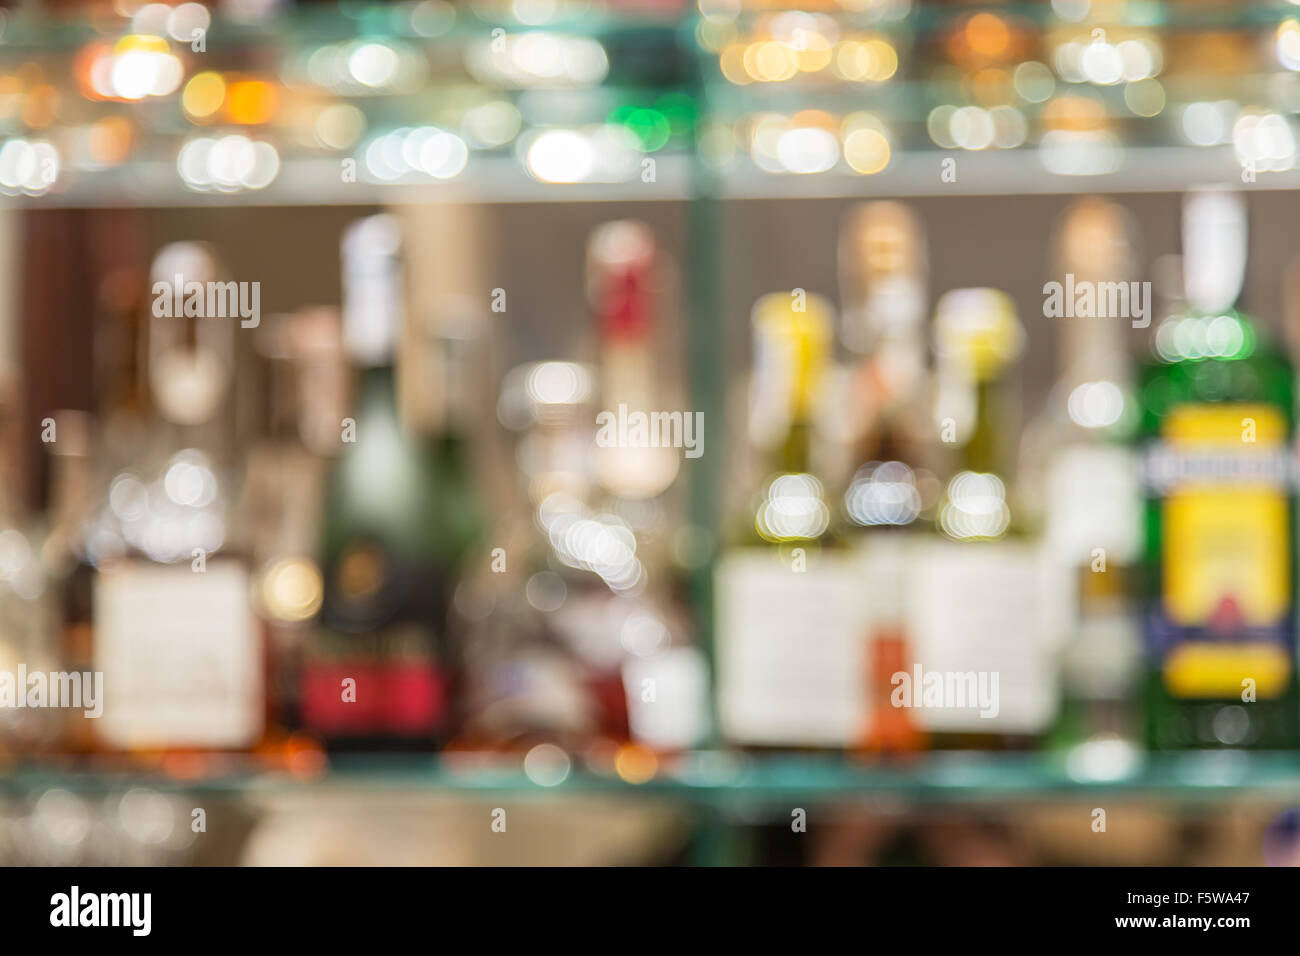 Glass bar counter with blurred shelves with alcohol bottles